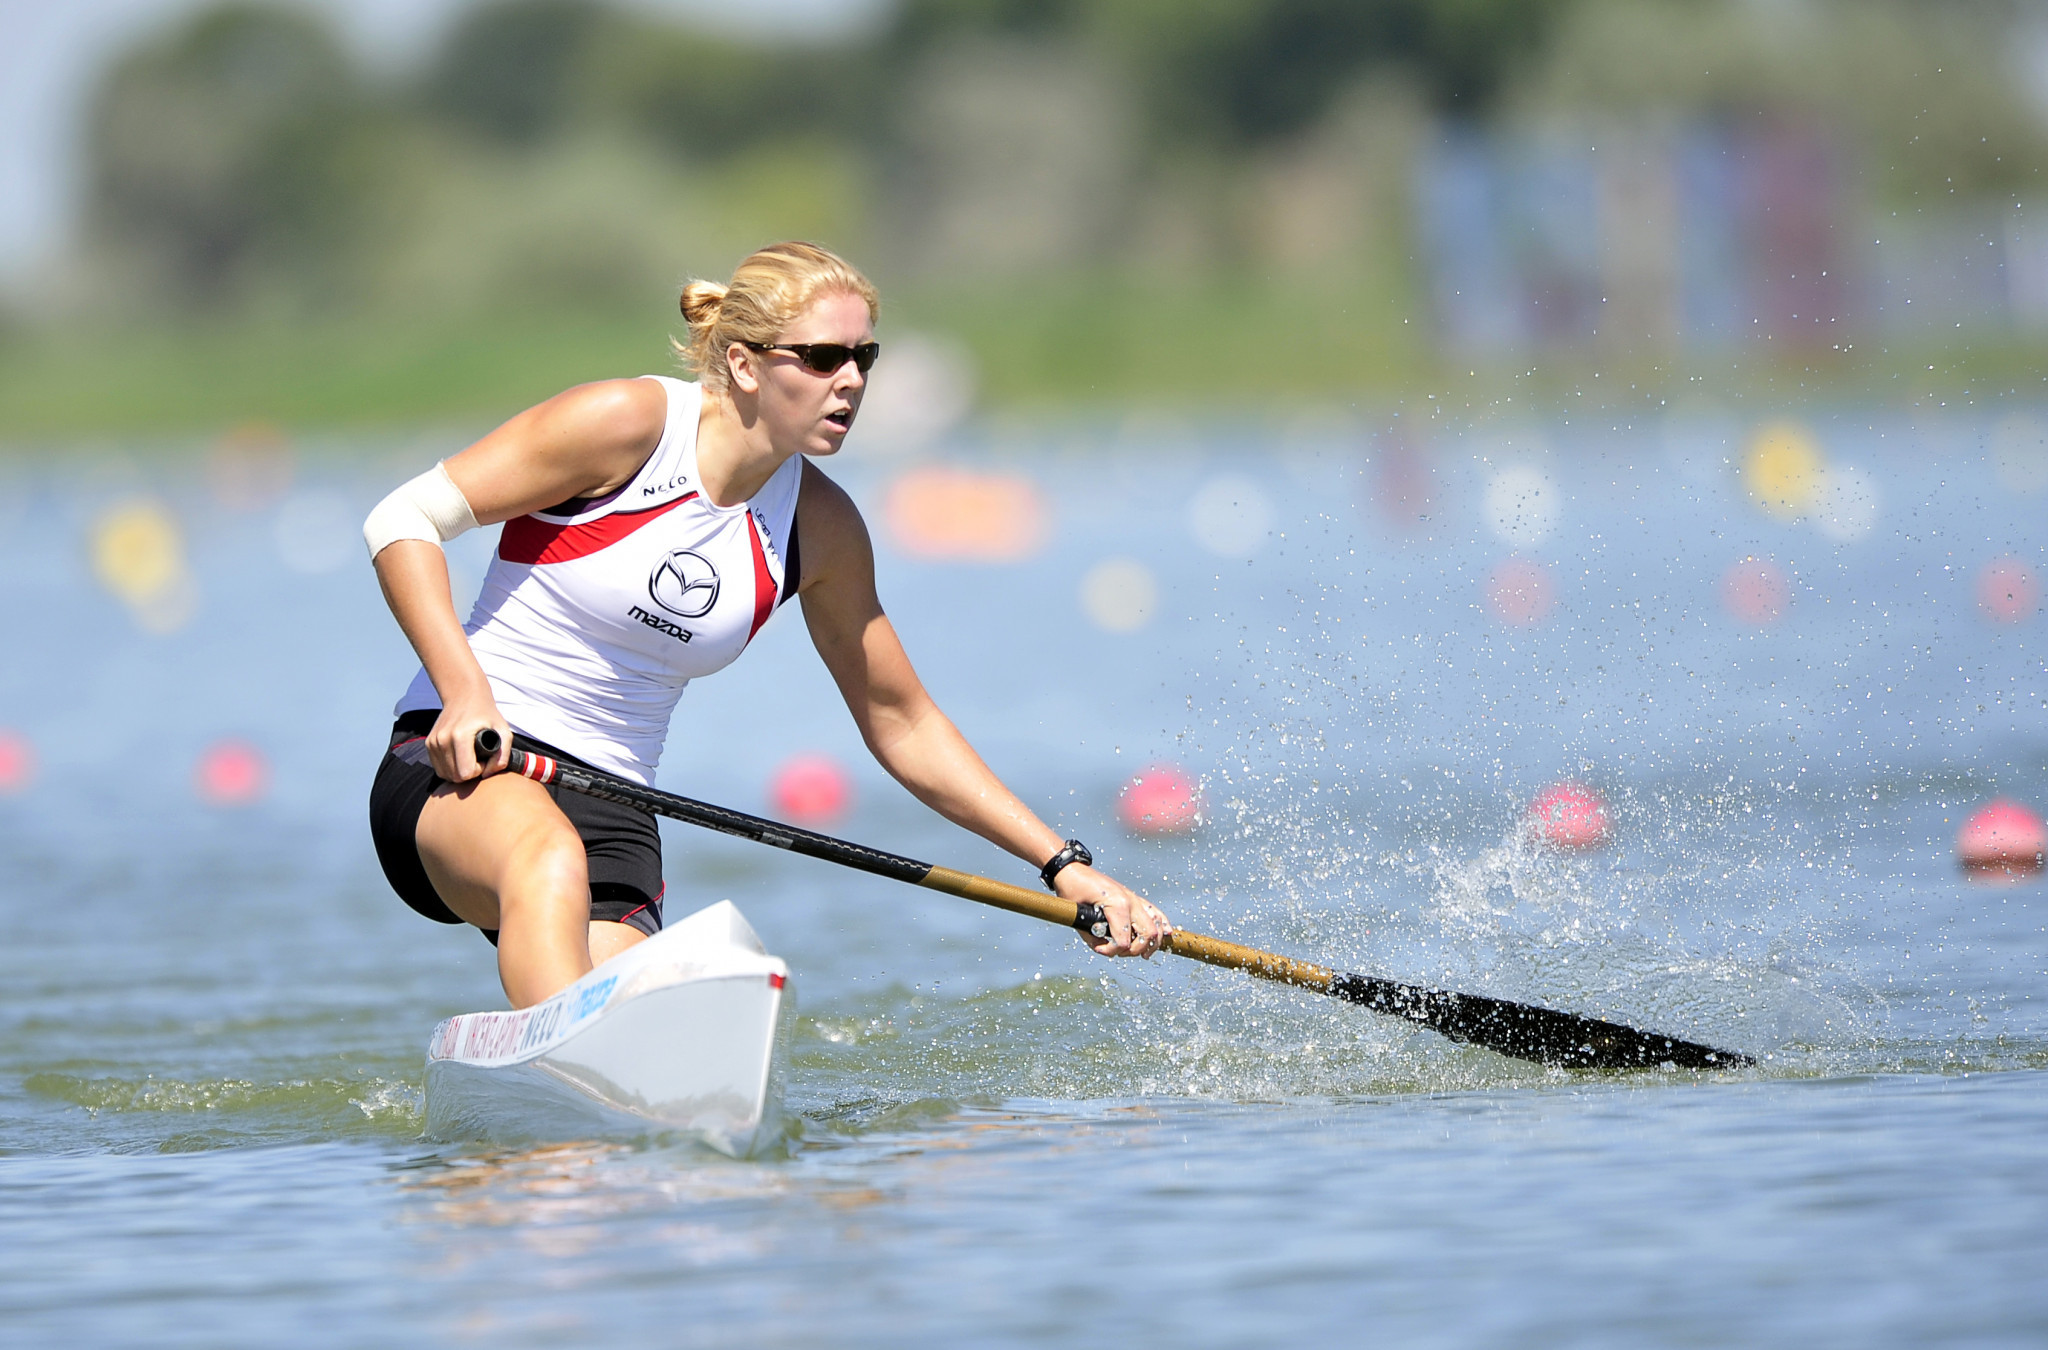 Tokyo 2020 the target as ICF Canoe Sprint World Cup season starts in Poznań for Olympic hopefuls